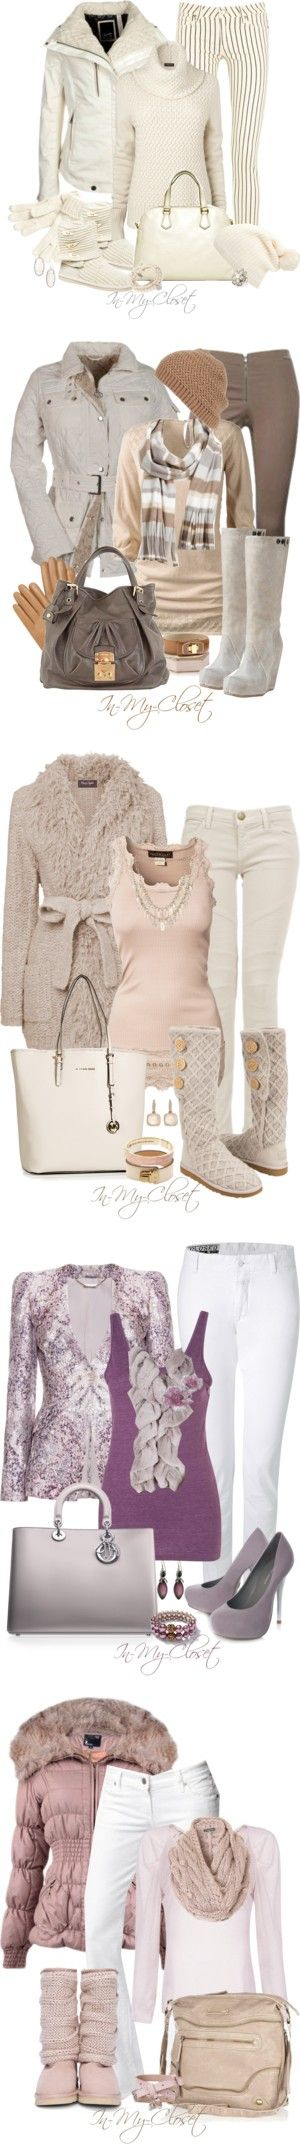 """Winter Wear"" by in-my-closet on Polyvore"